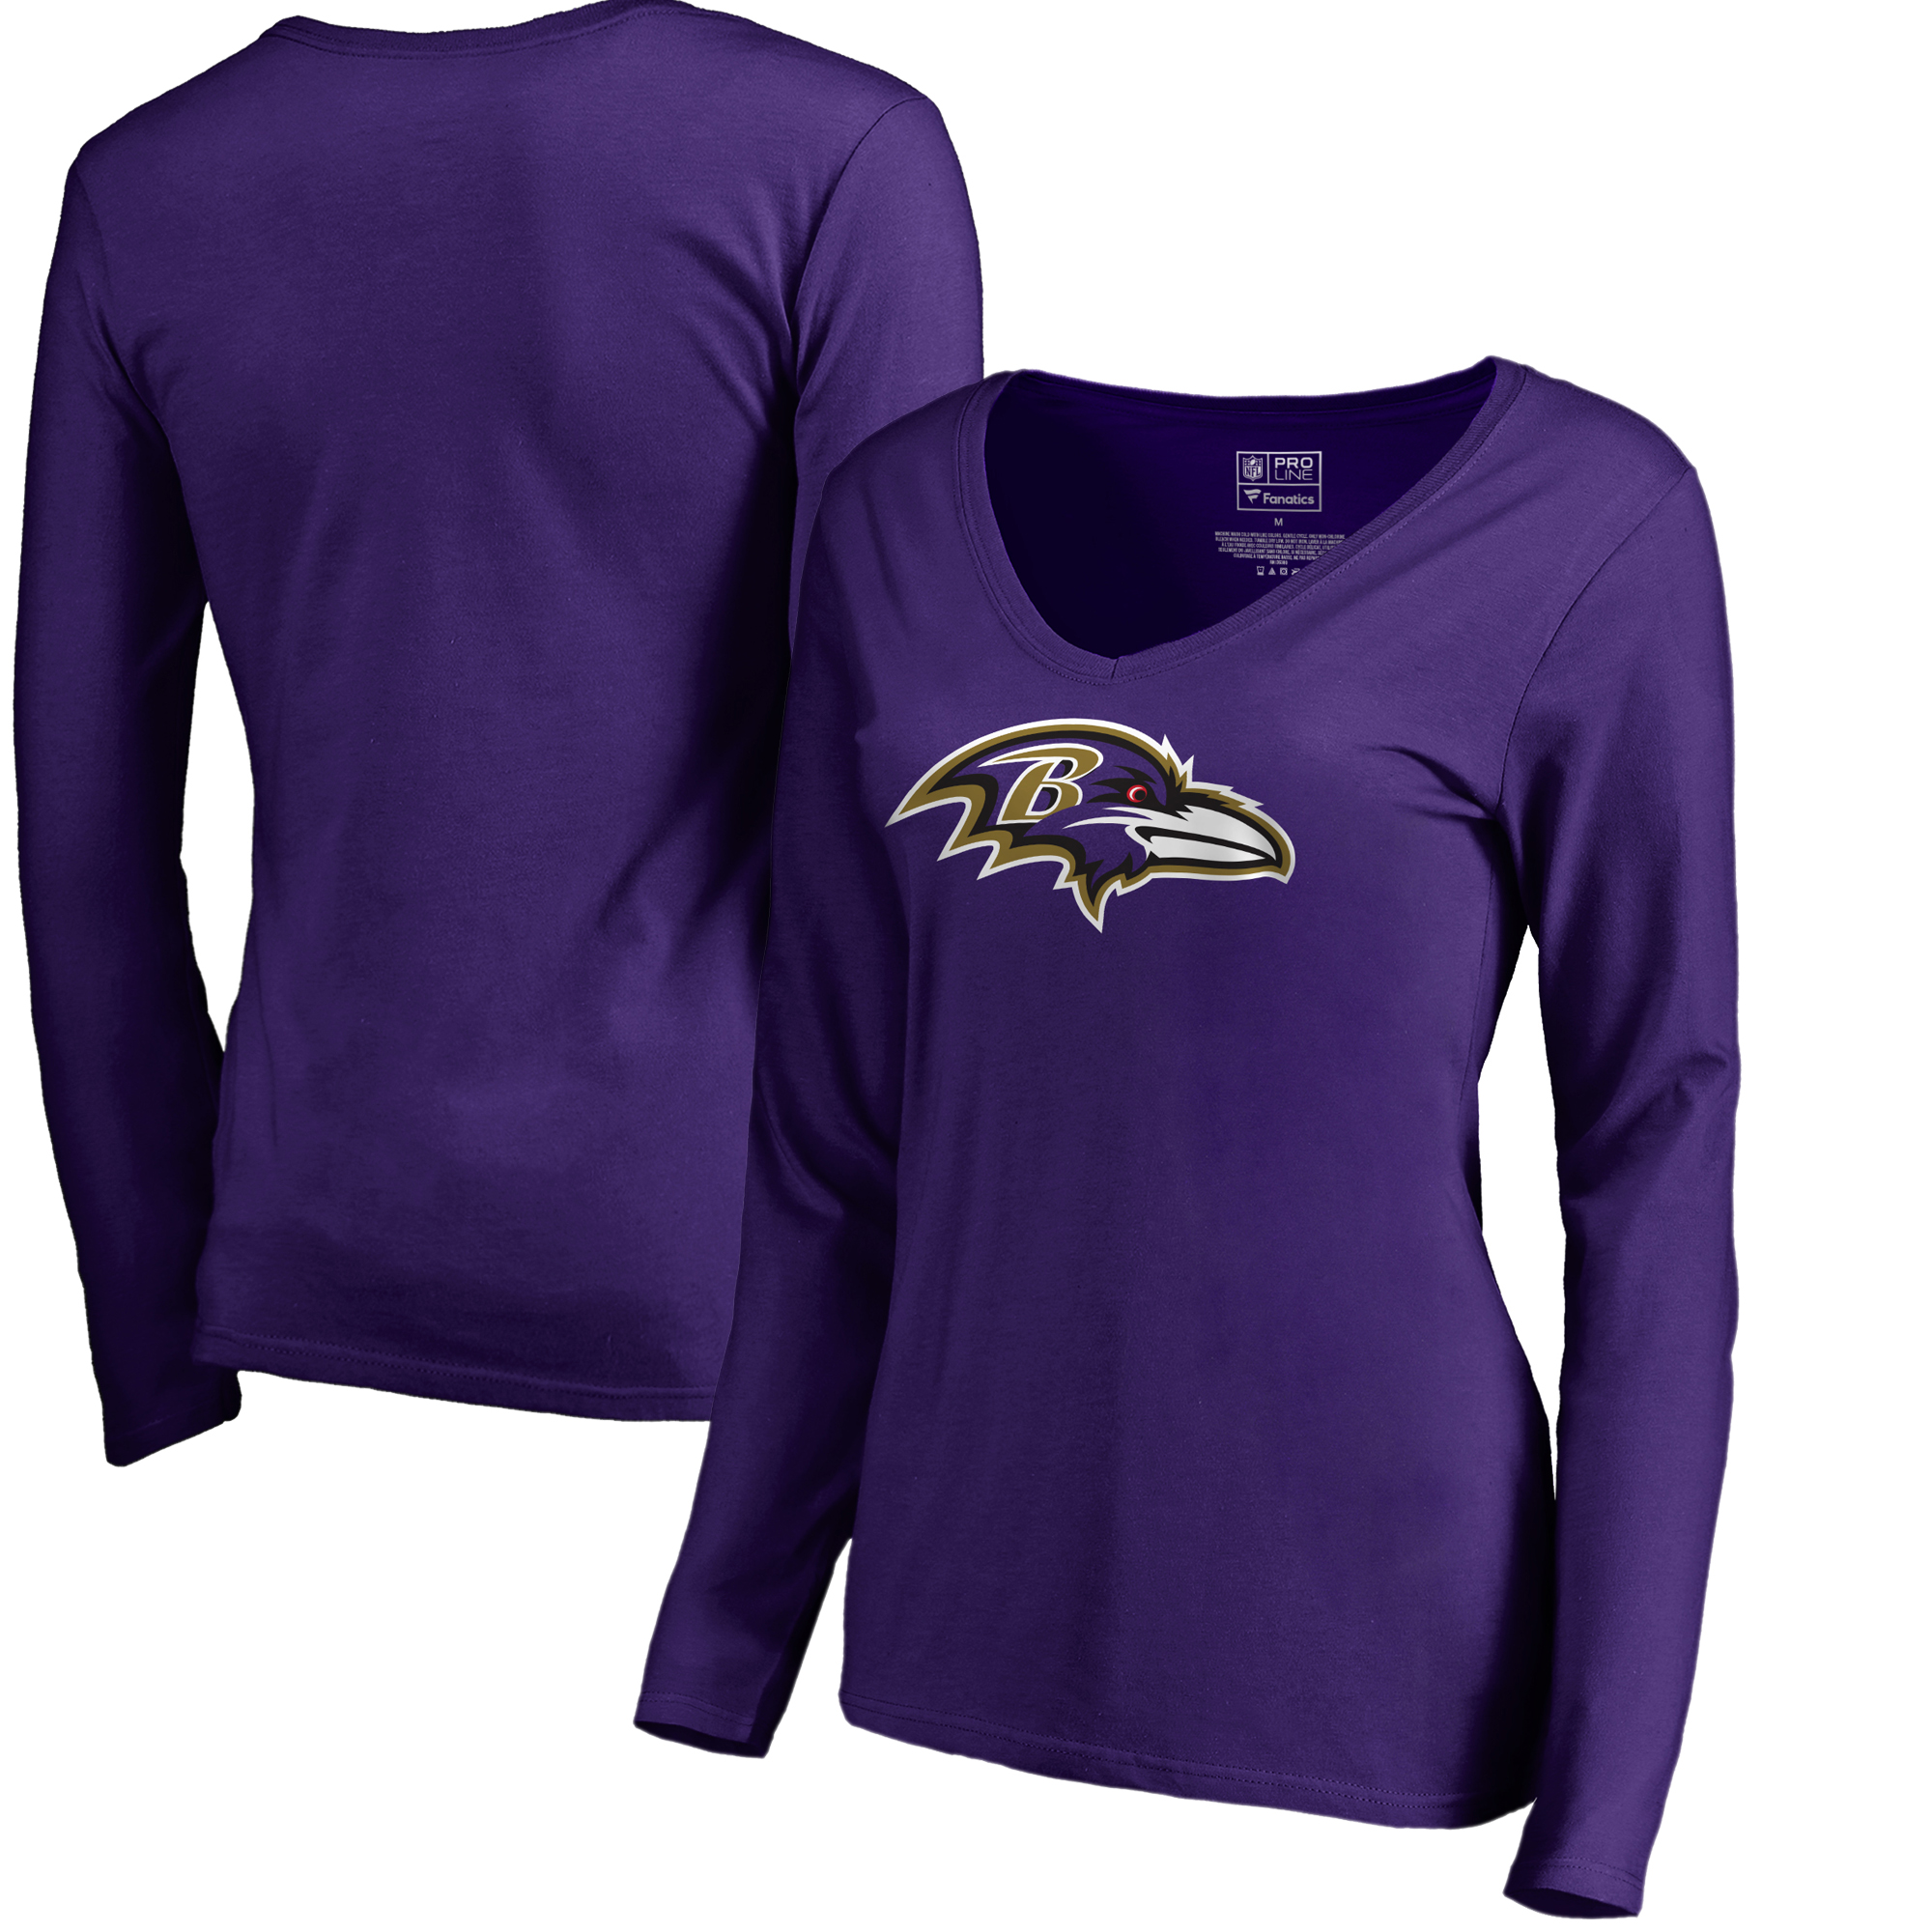 701d6548a Baltimore Ravens NFL Pro Line by Fanatics Branded Women s Primary Logo  V-Neck Long-Sleeve T-Shirt - Purple - Walmart.com